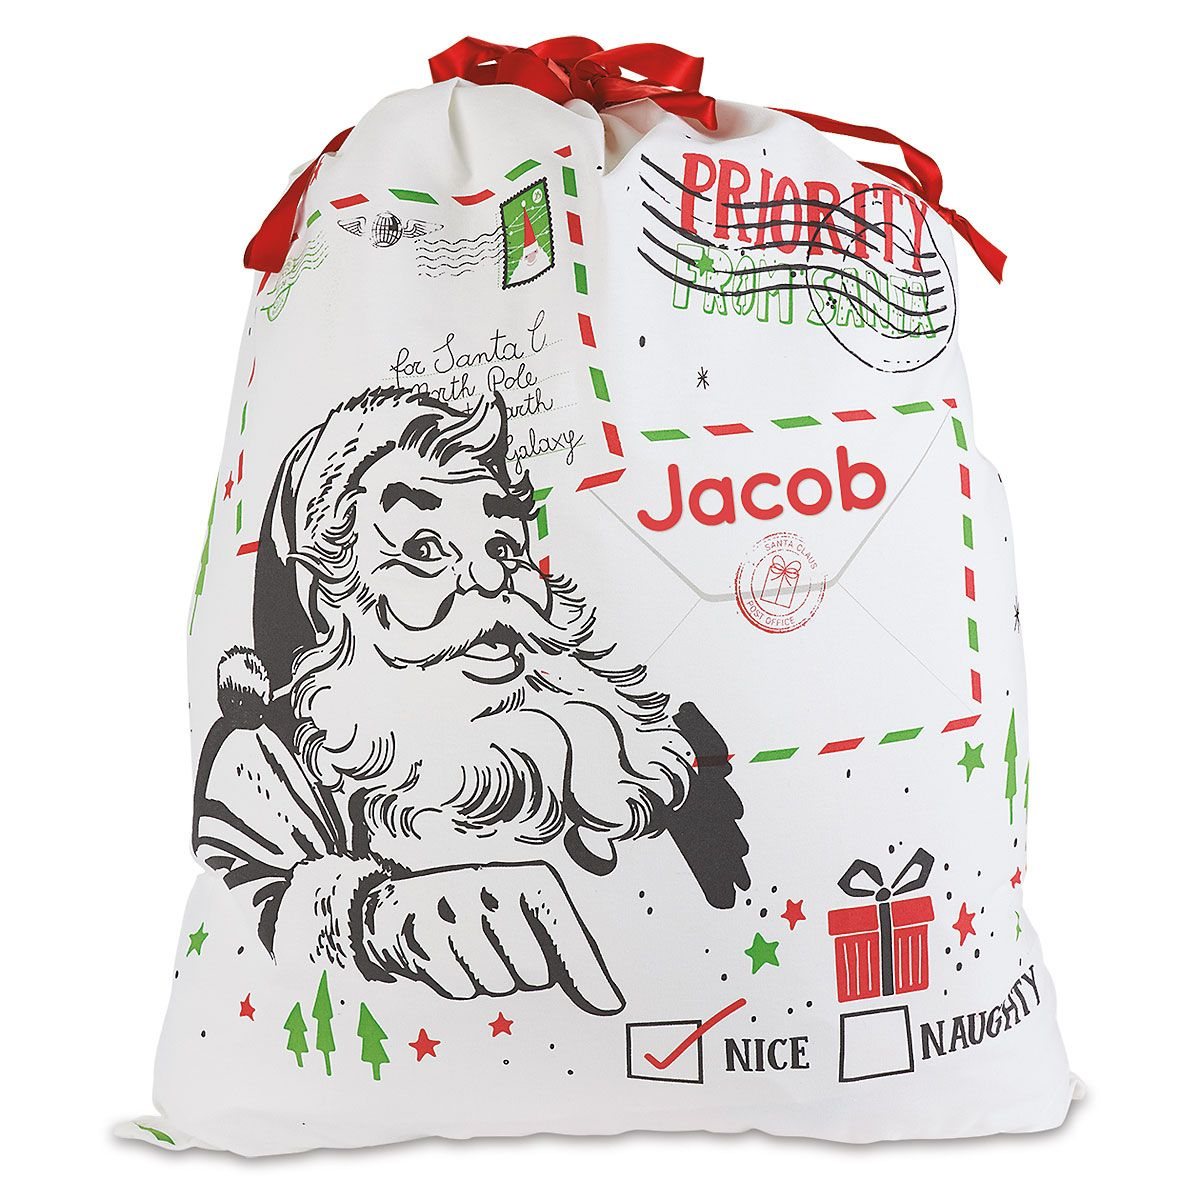 Naughty or Nice Personalized Canvas Gift Bag